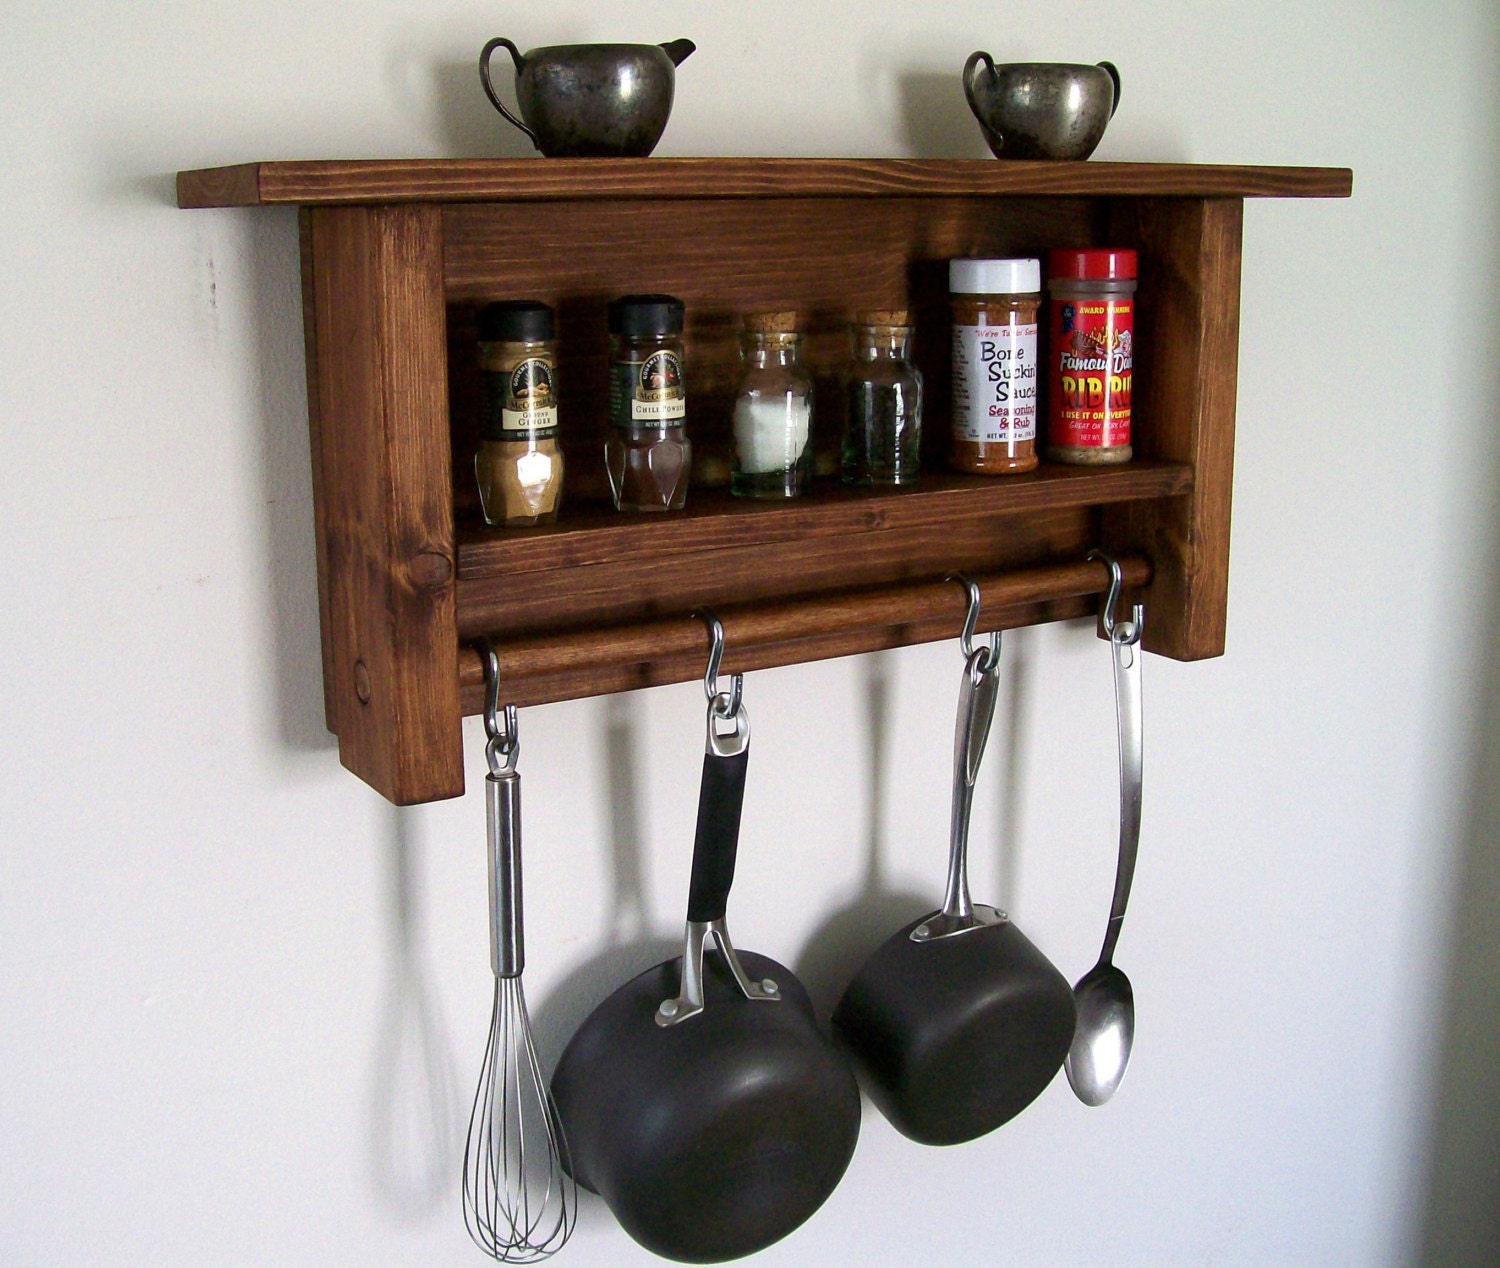 Rustic spice rack kitchen shelf pot rack kitchen orgainizer for Pot racks for kitchen